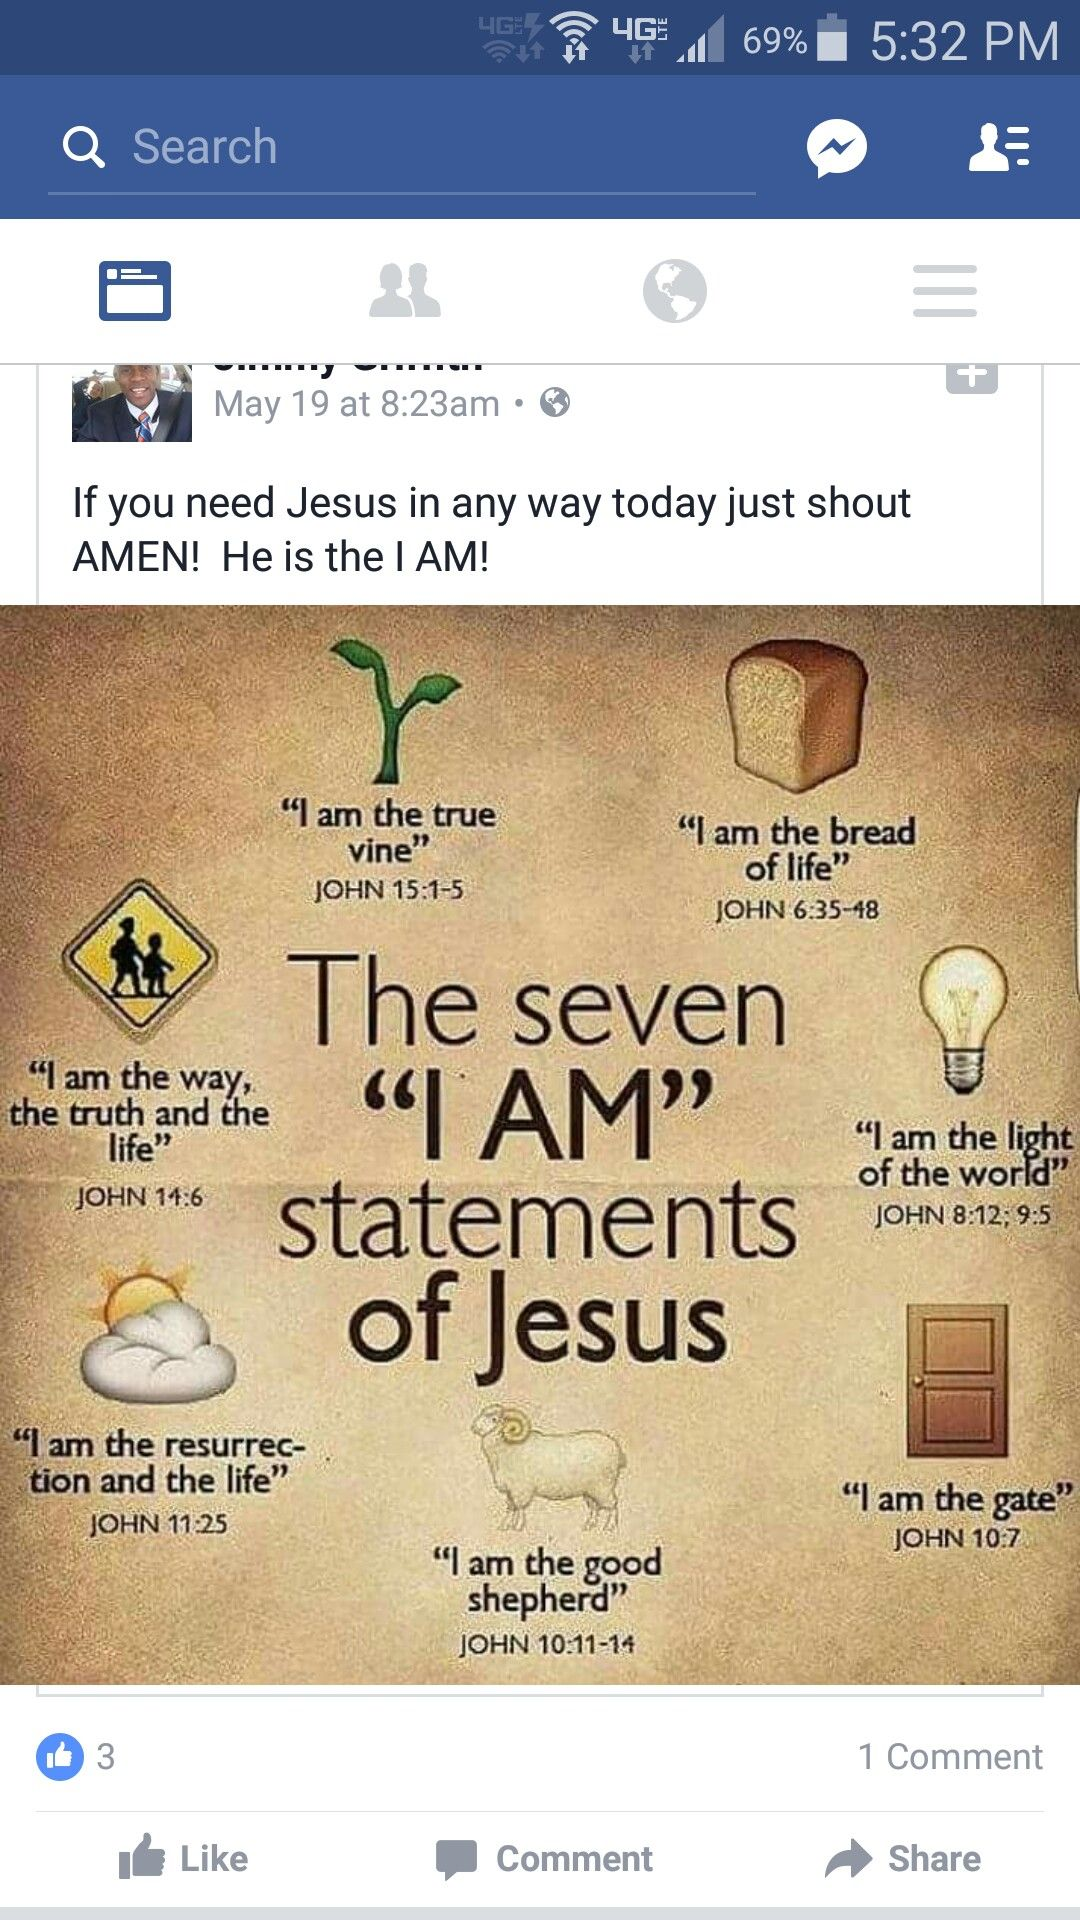 I am Sayings in John Visual | Sunday School helps | Pinterest